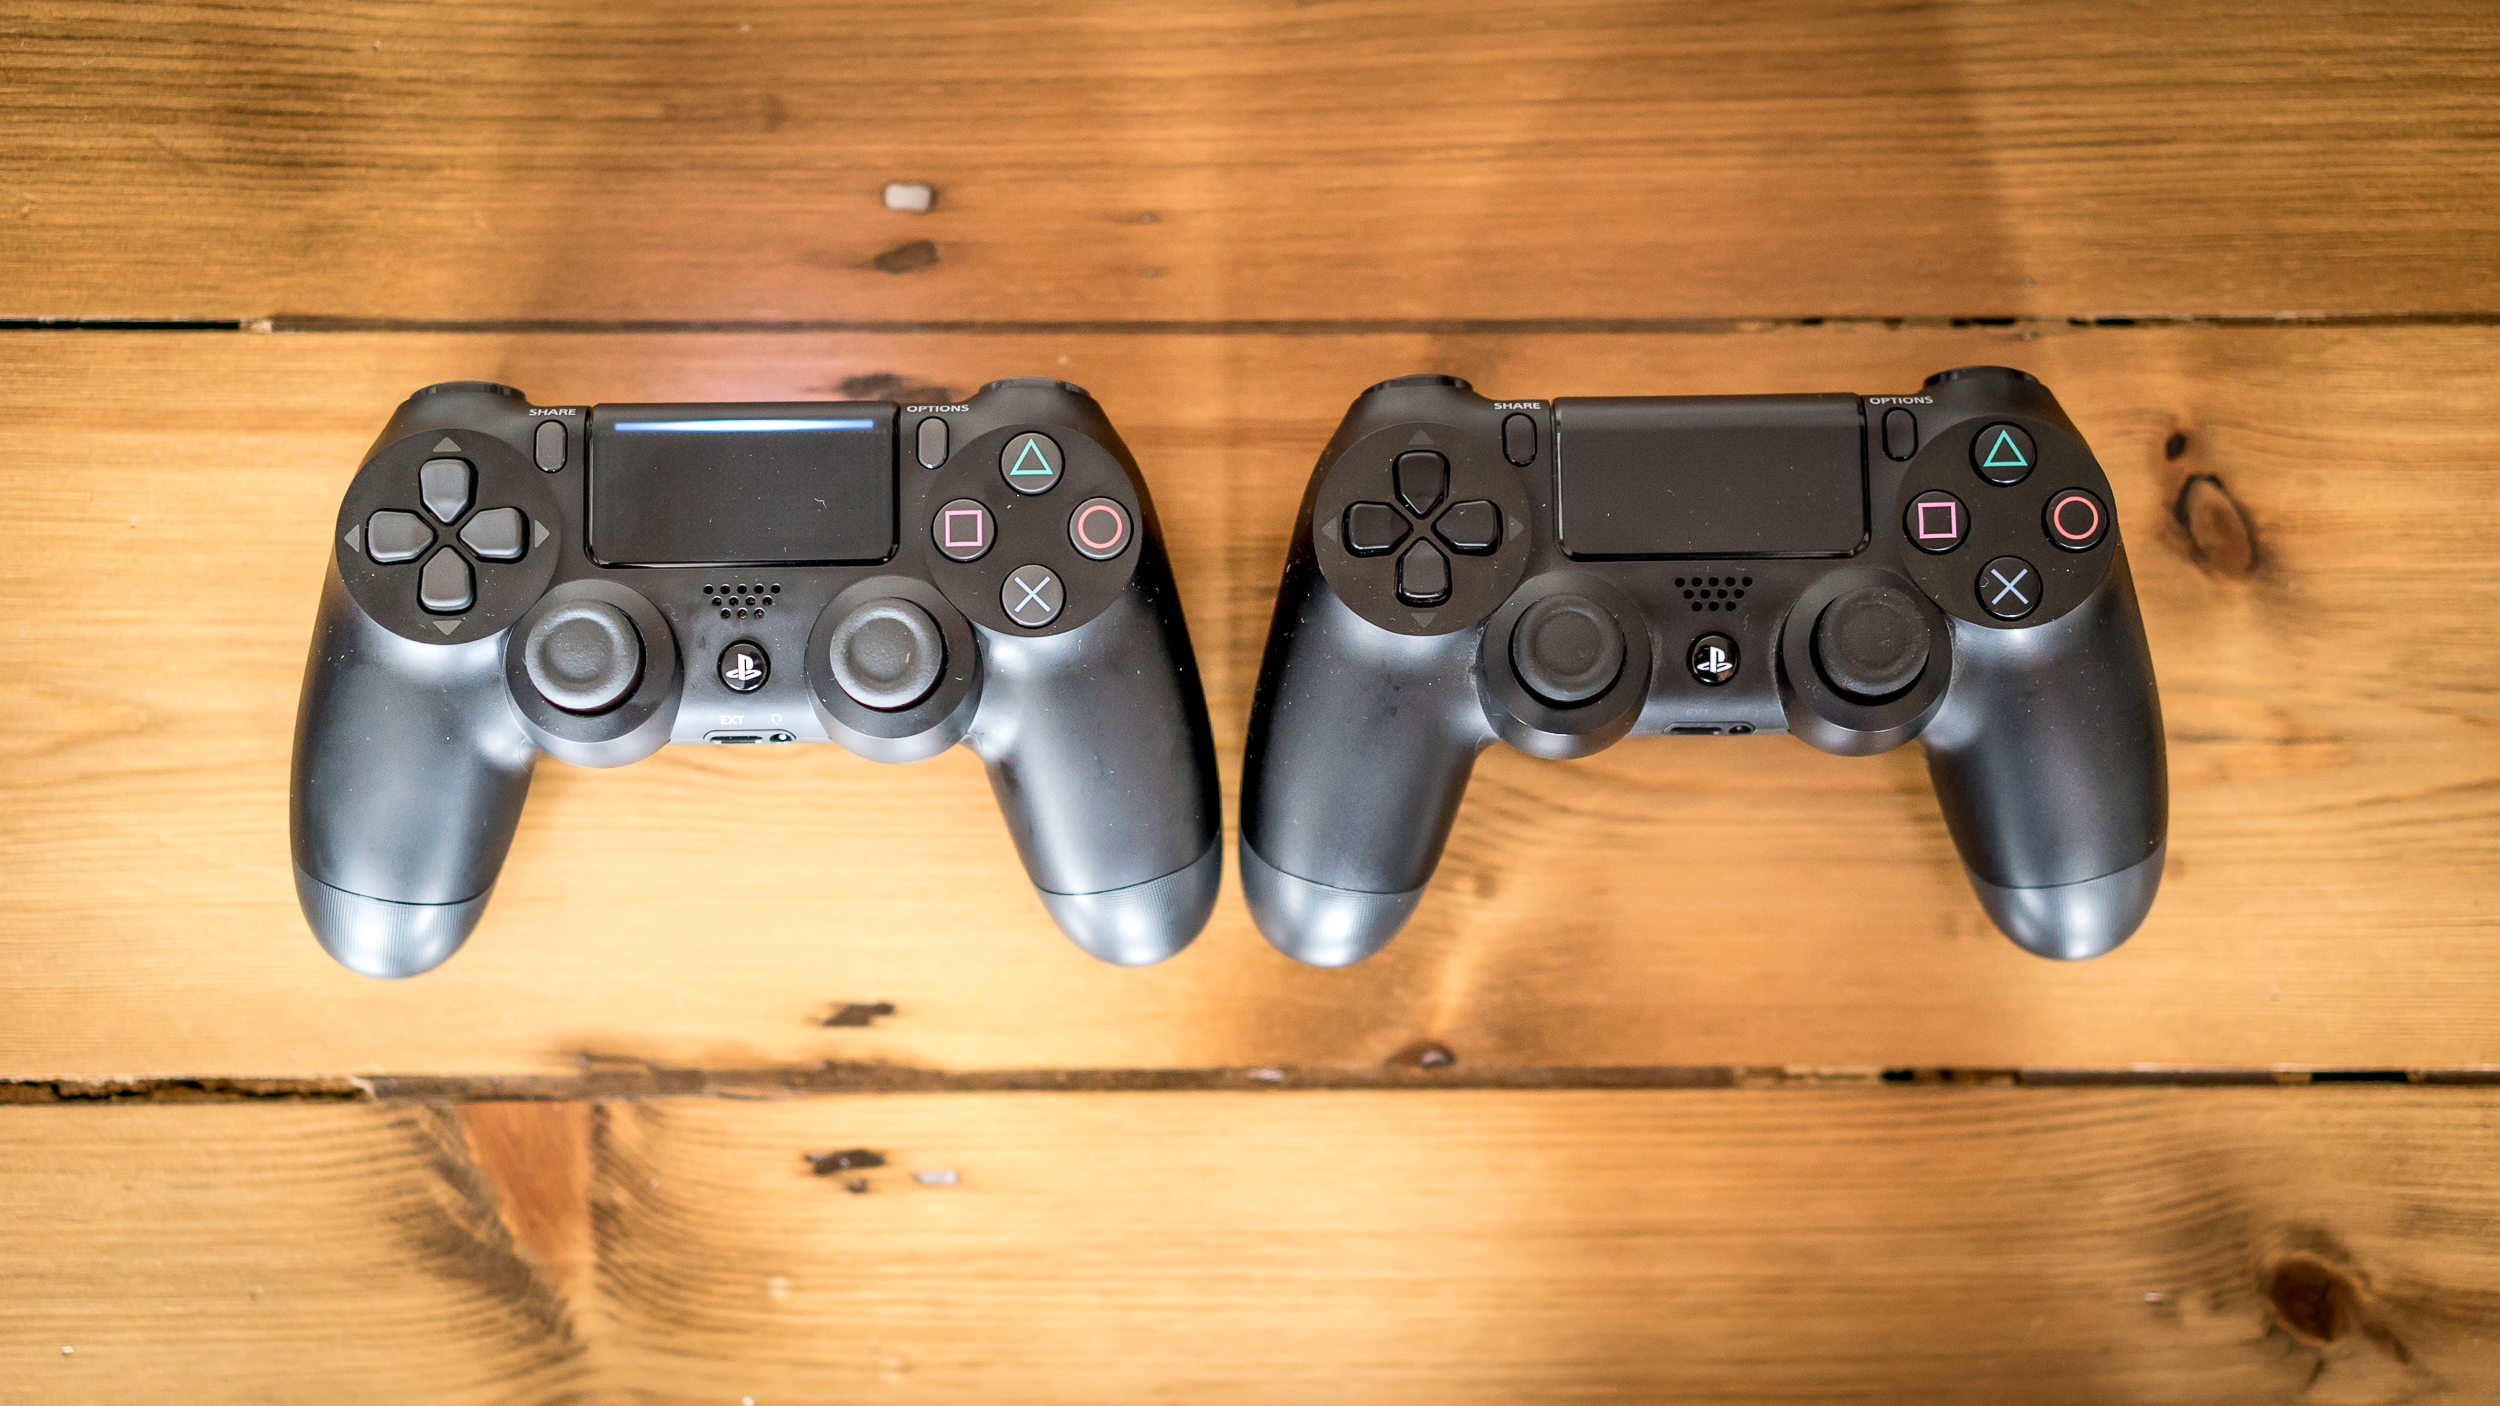 PS4 Slim review: A smaller, sexier console with few